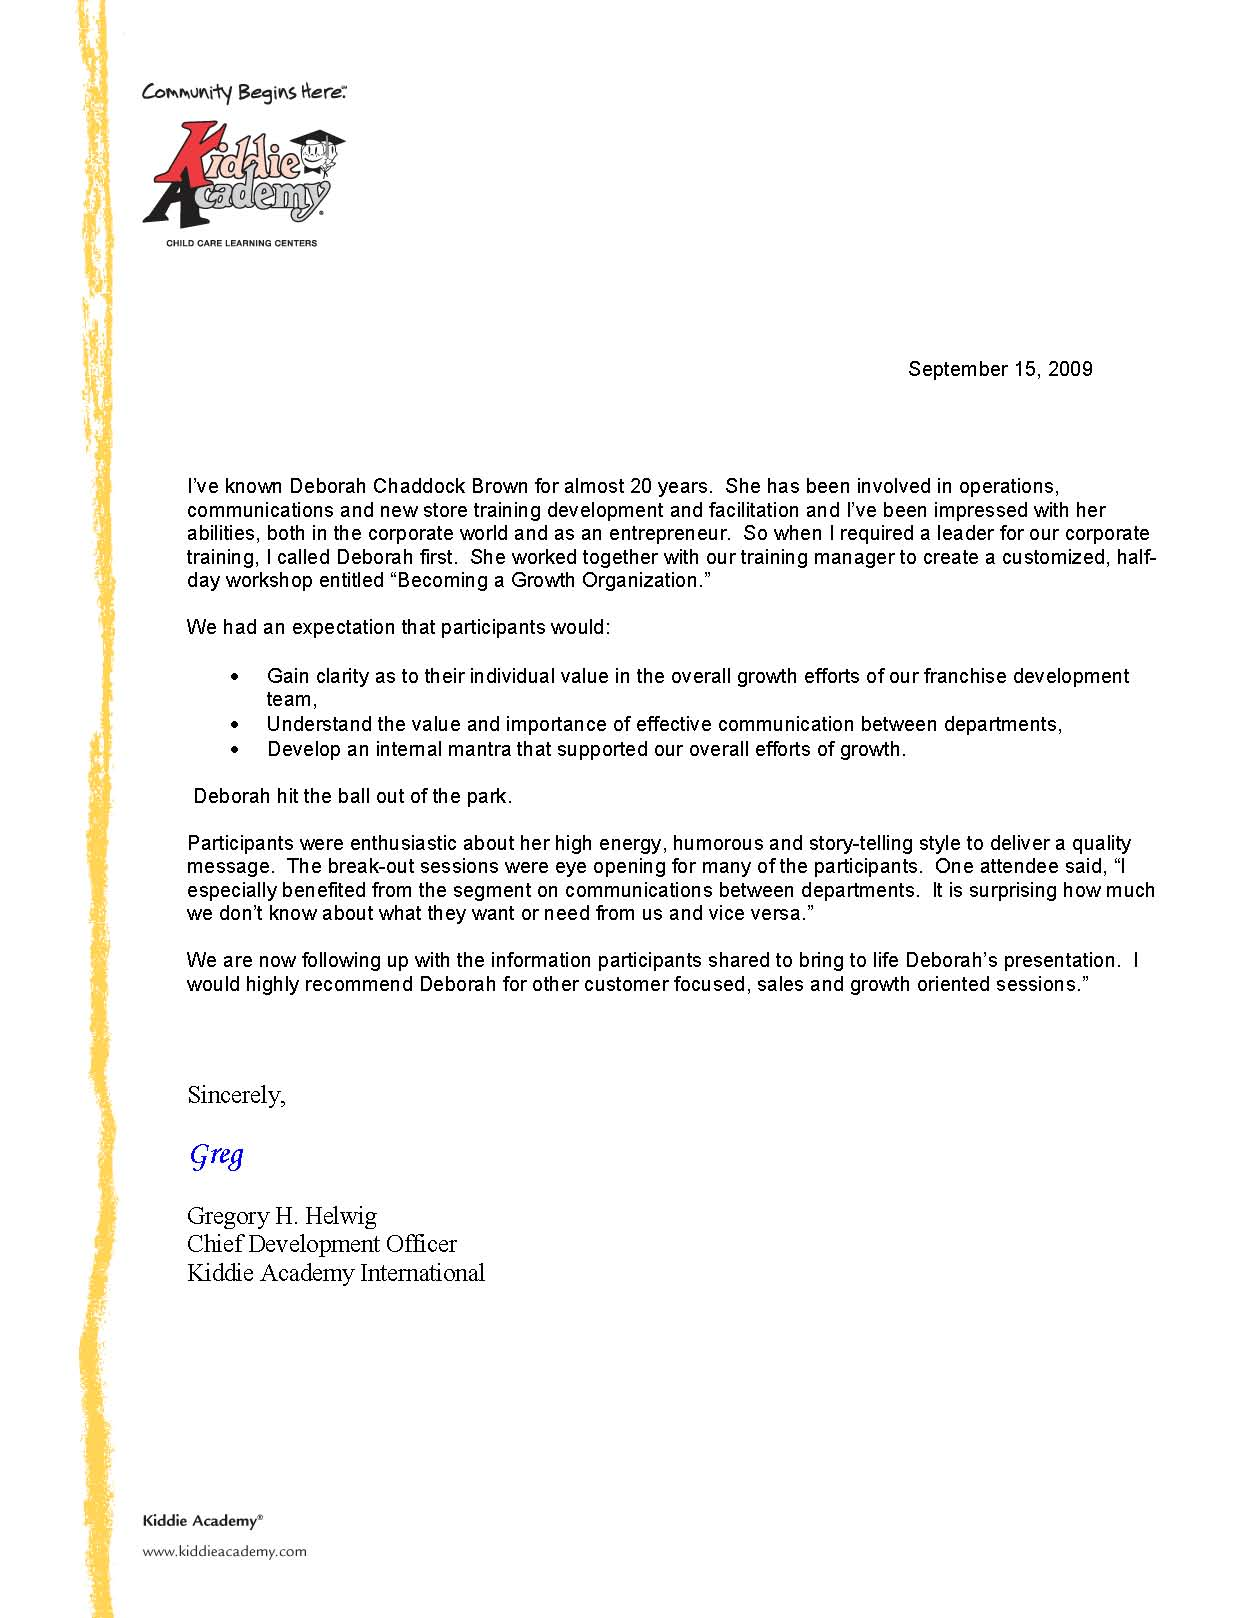 Sample of a Testimonial Letter